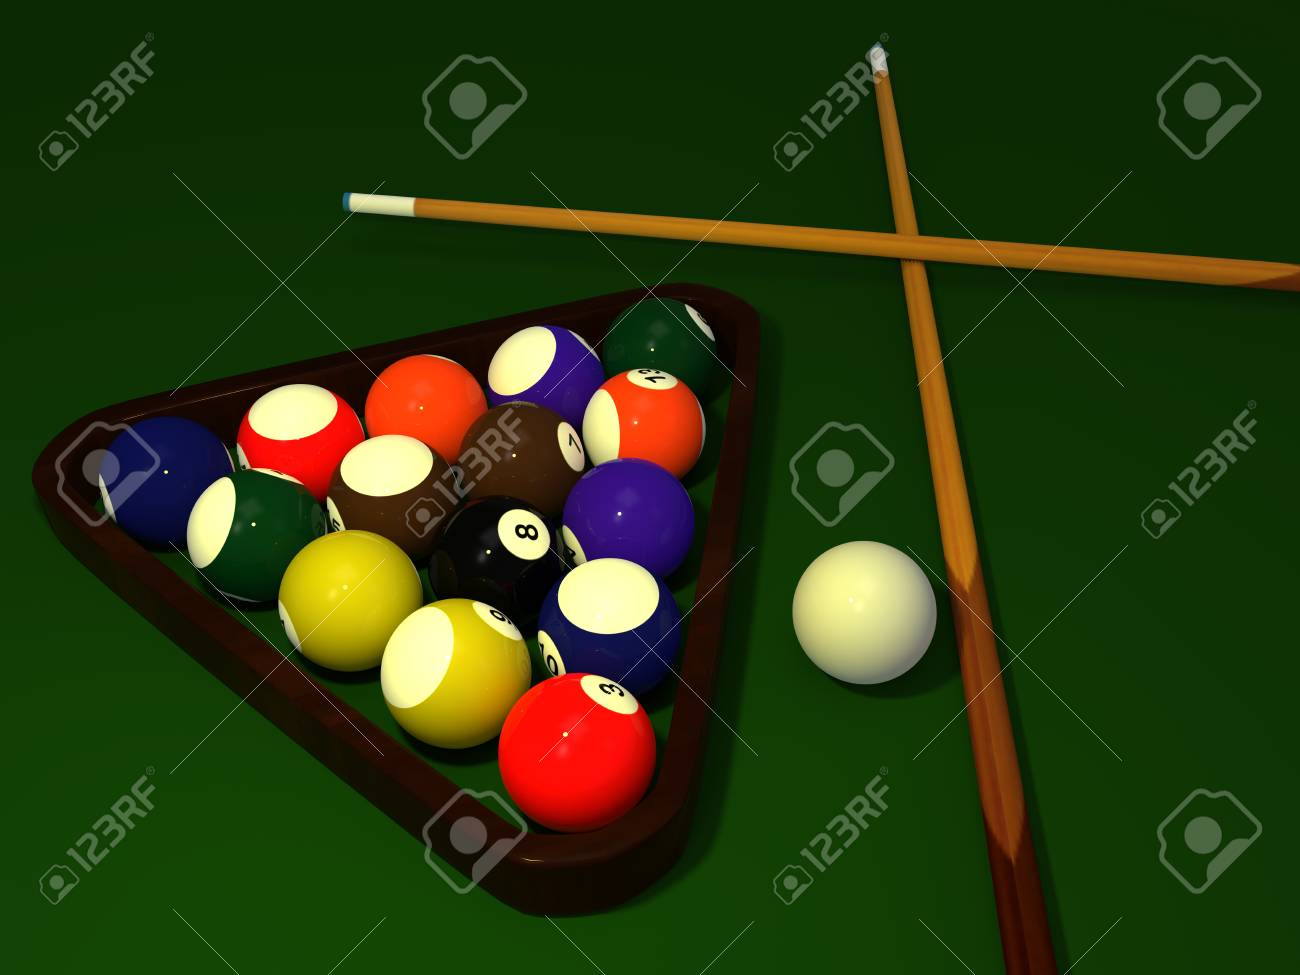 Billiard table with balls set. 3D rendering. Stock Photo - 66526017 & Billiard Table With Balls Set. 3D Rendering. Stock Photo Picture ...